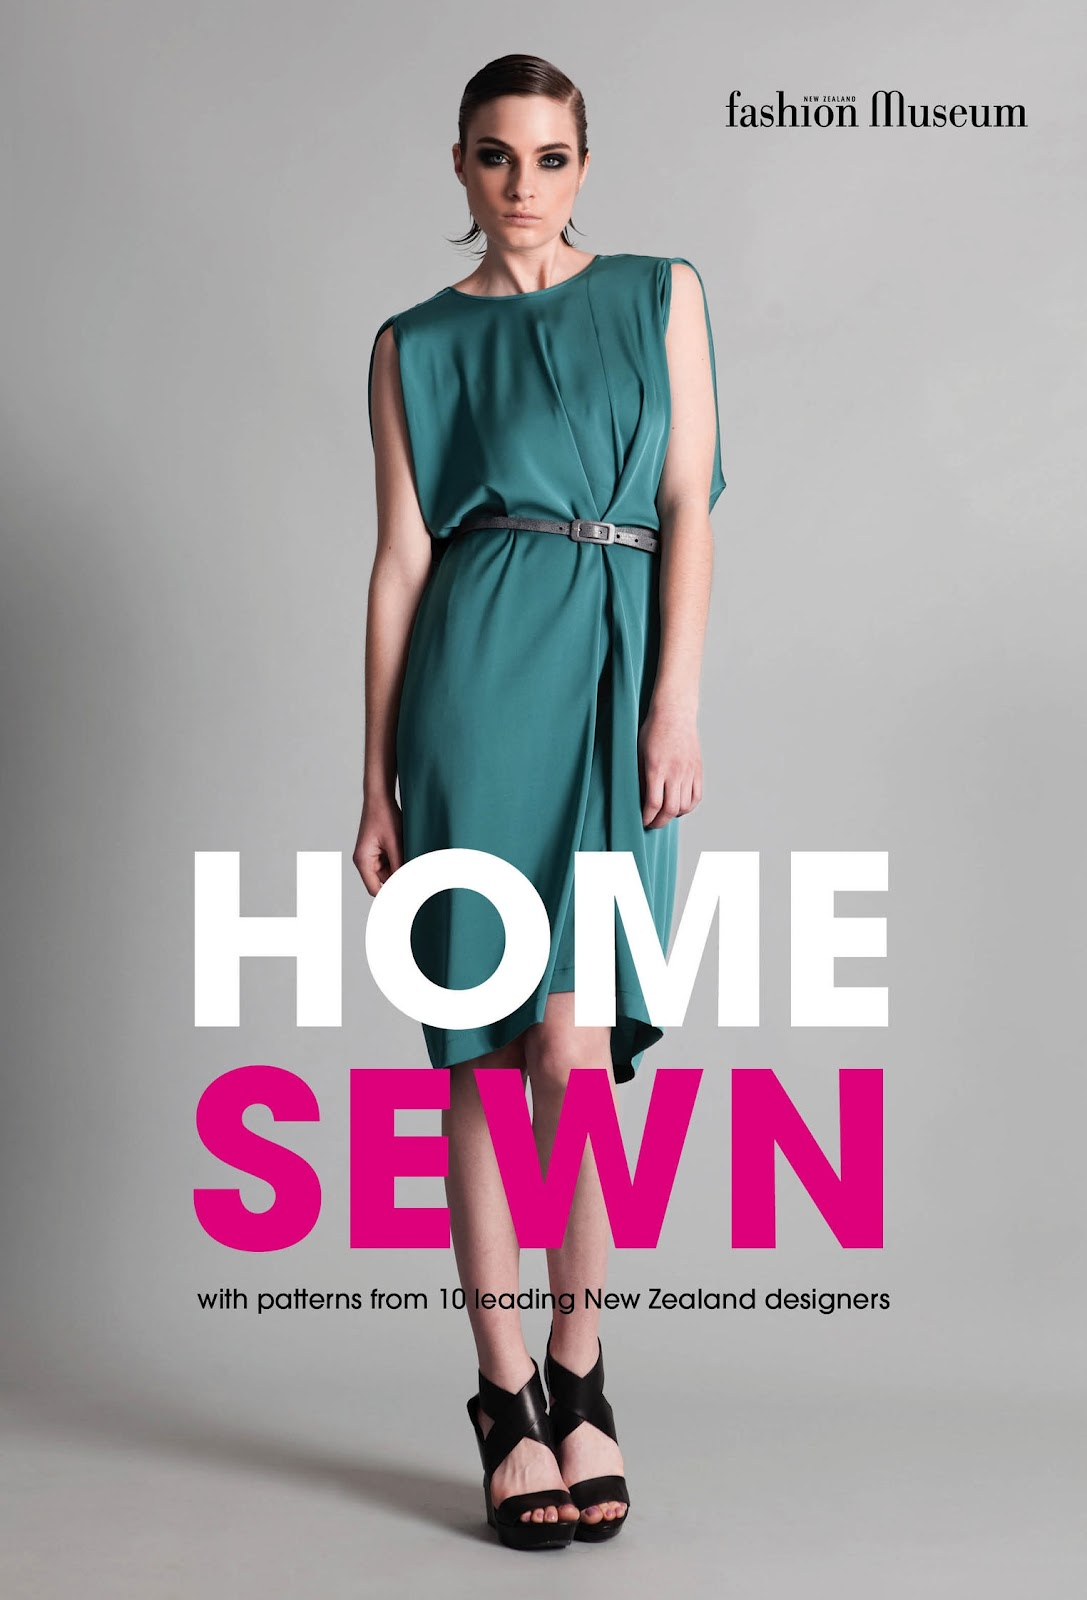 Fashioning Yourself: a story of home sewing Google Arts Culture Home sewn fashion museum